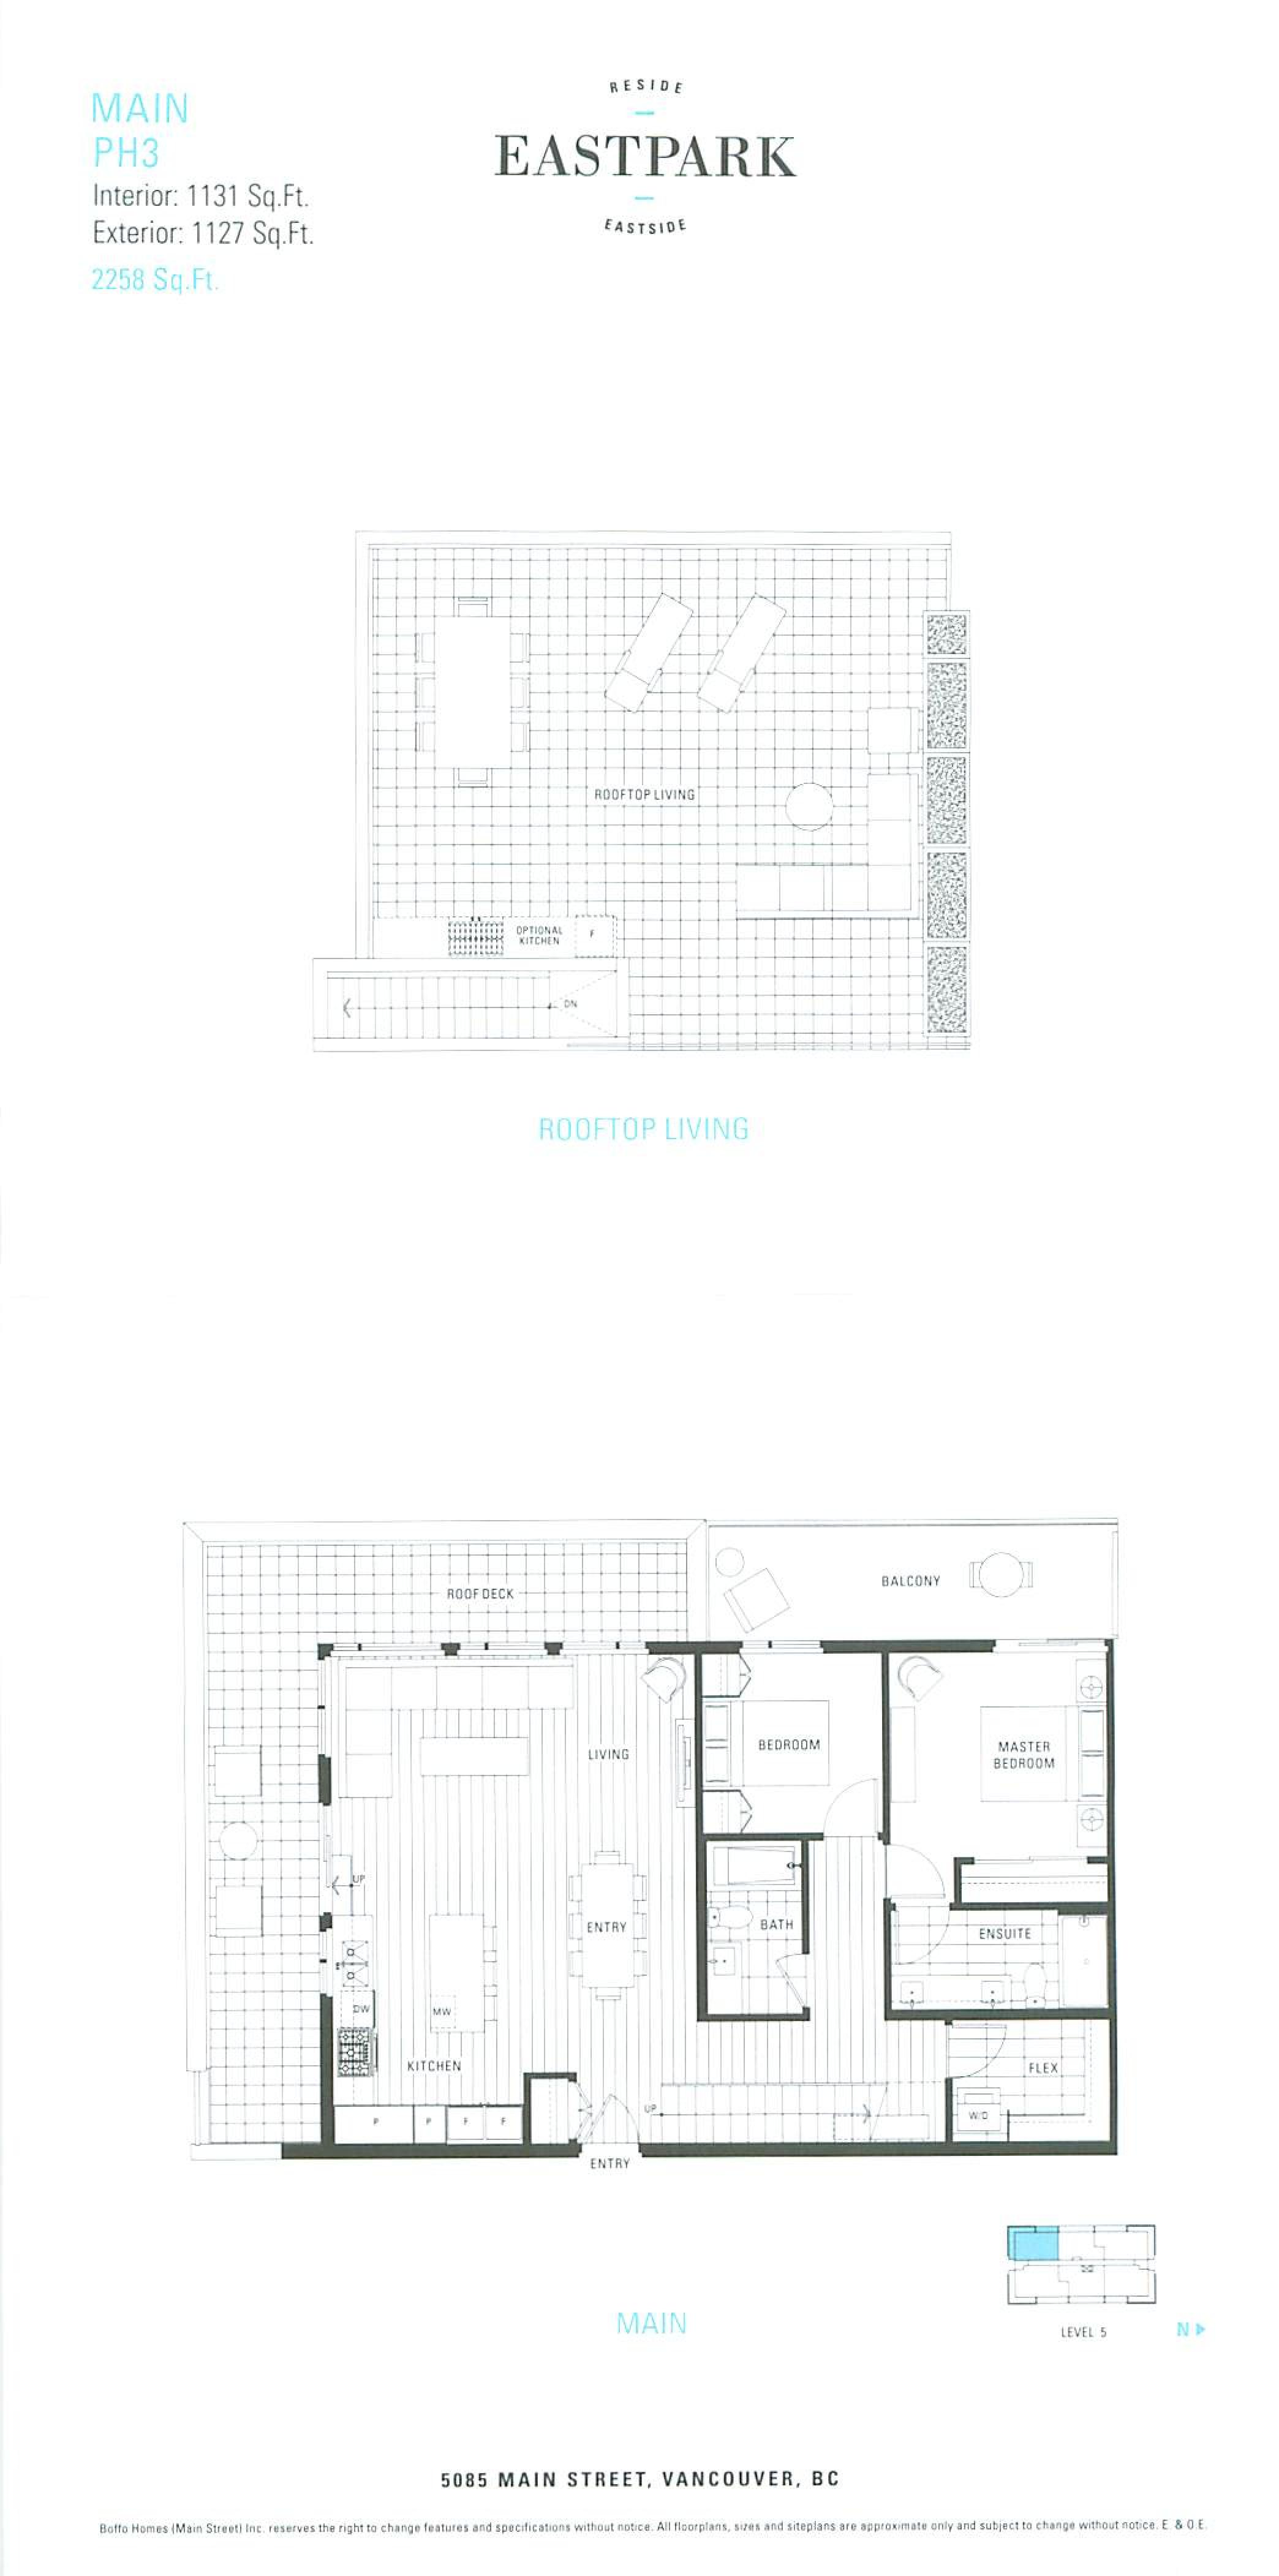 EastPark Main Larger Floor Plans Mike Stewart-page-002